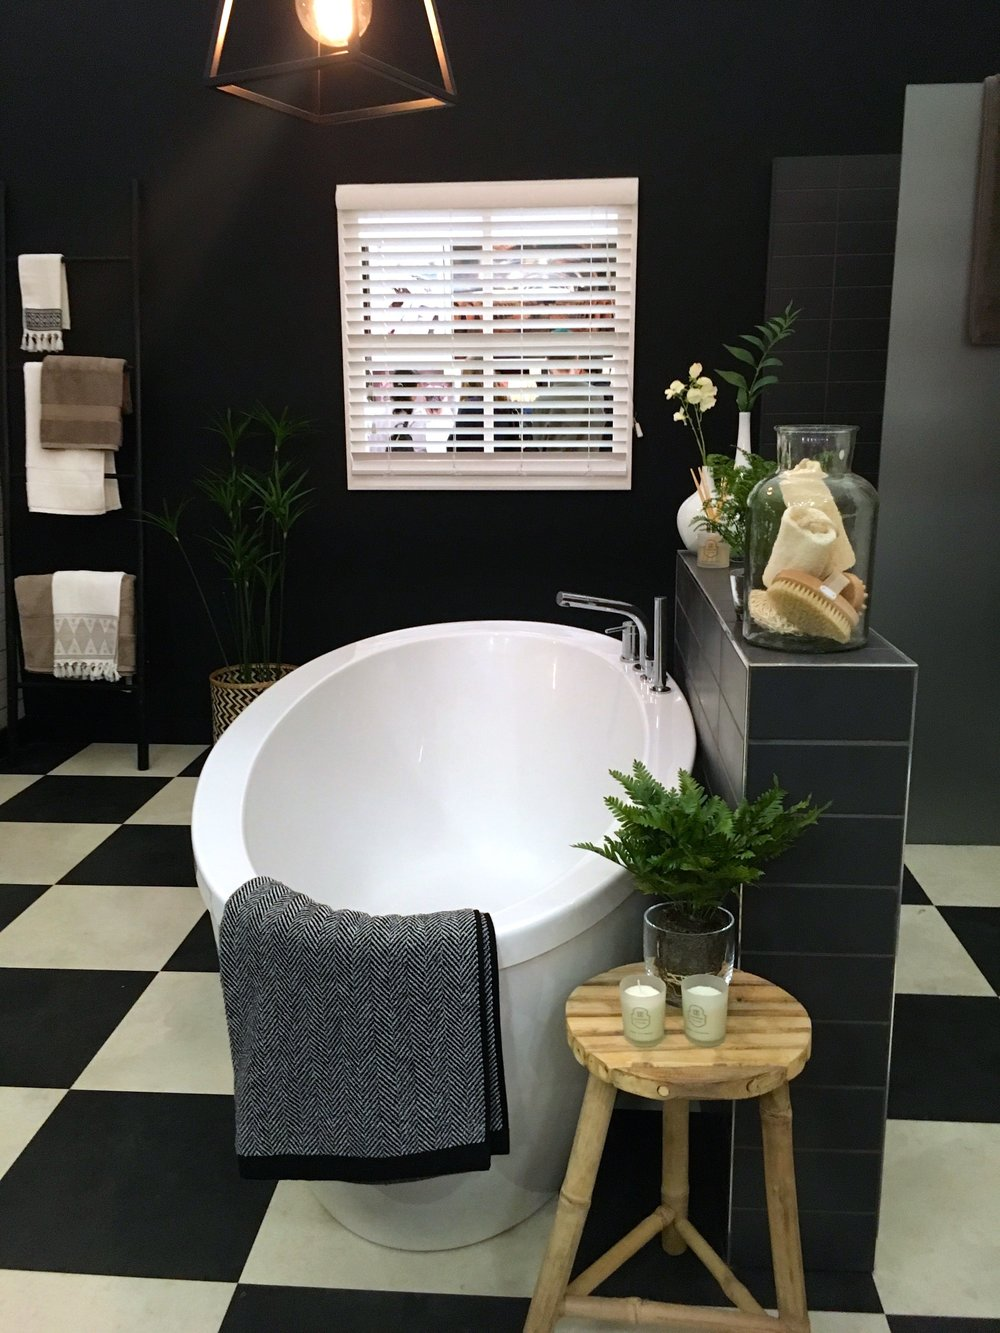 Classic black and white in the bathroom room set at the Ideal Home show